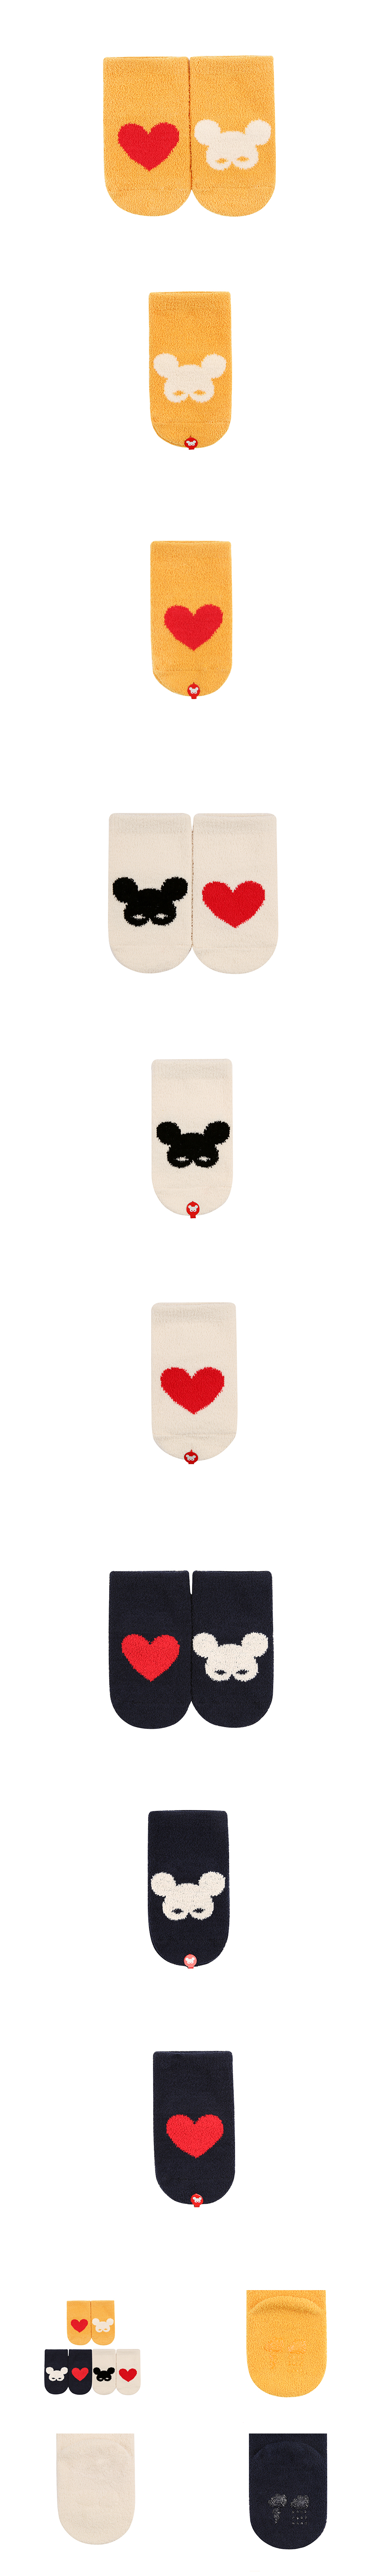 Pino heart sleeping socks 상세 이미지